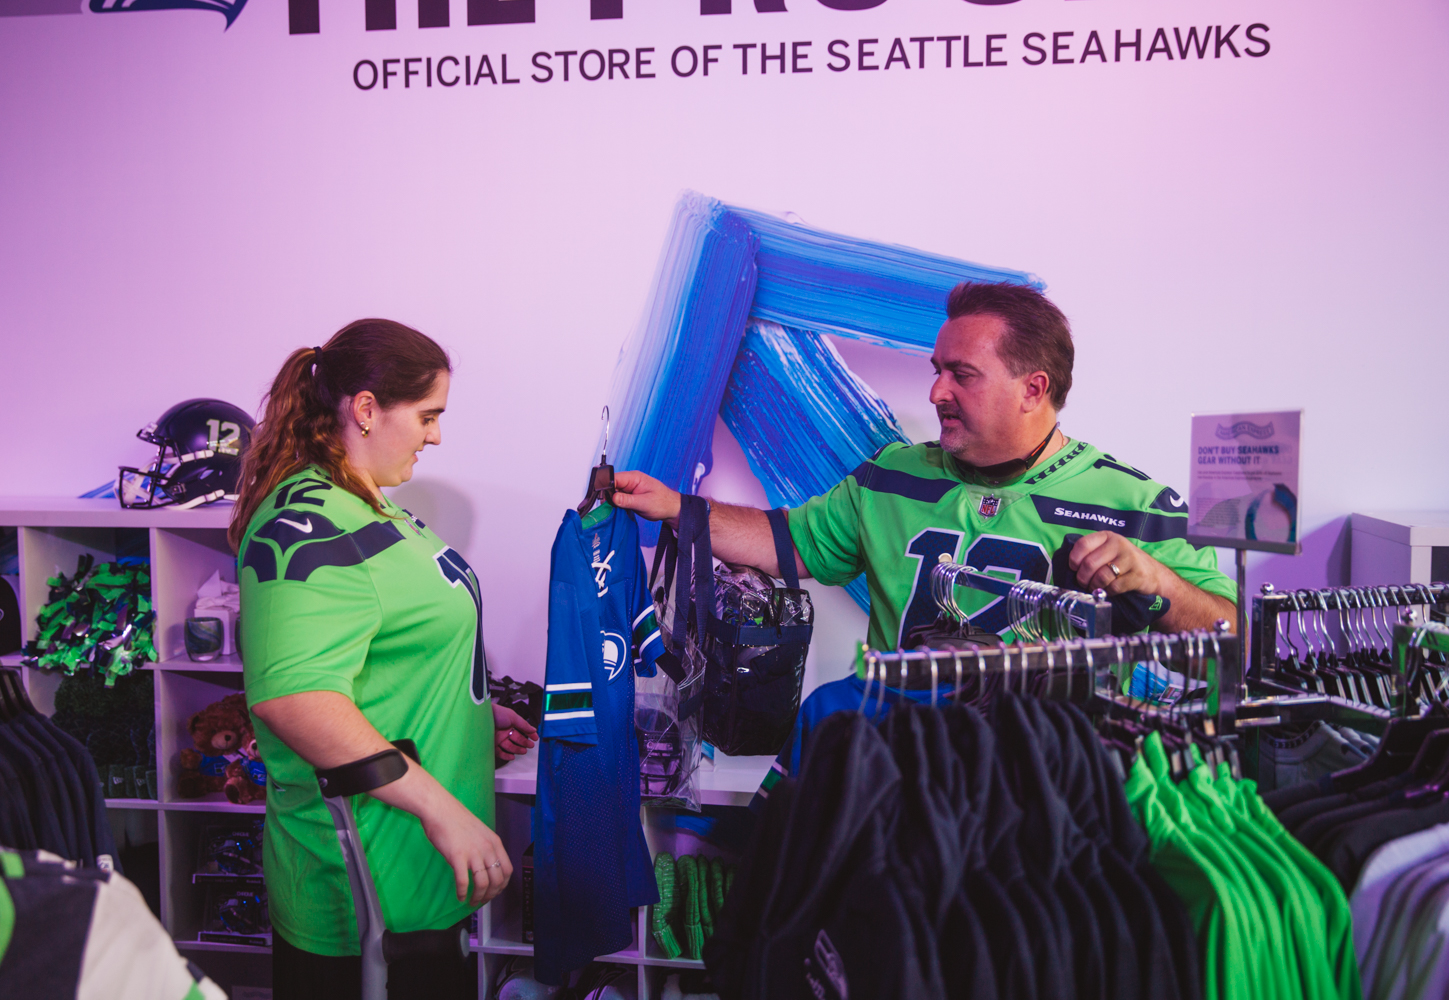 There was an extra special pre-game Hawks celebration today (Sept. 22) near CenturyLink Field - and this one was just for AMEX Express Card Members. The 'American Express Experience' boasted an assortment of on-site activities, like photo opps, a Giant Seahawks Throne made of helmets and footballs, wings mural, food, a pro-shop discount, and even an appearance by legend Steve Largent. The Experience will be open to all fans before every Seahawks home game. (Image: Ryan McBoyle / Seattle Refined)